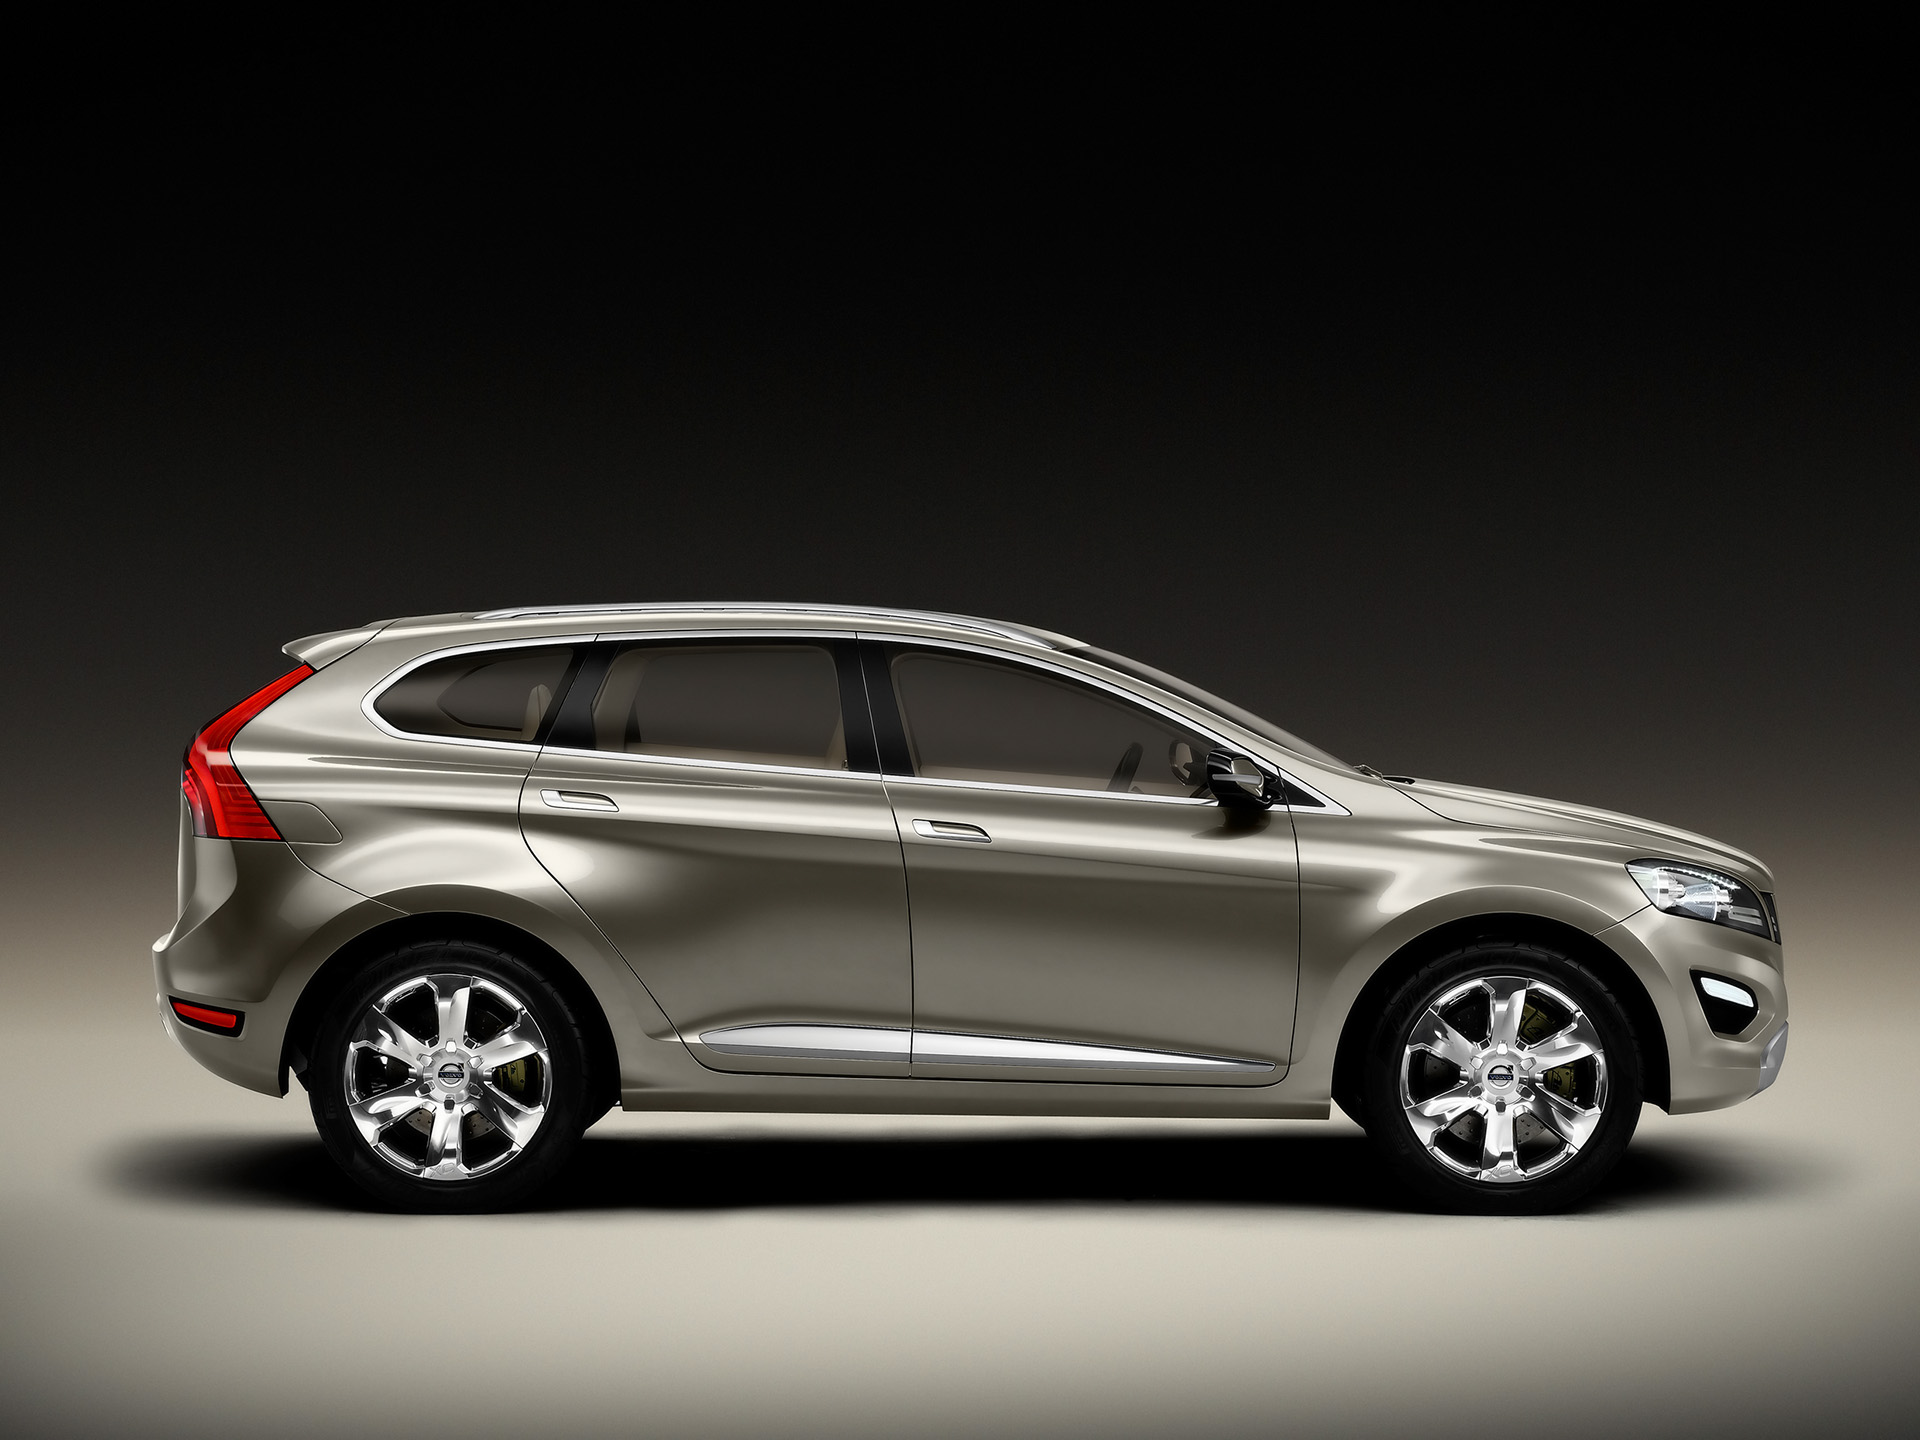 VOLVO XC60 - Review and photos